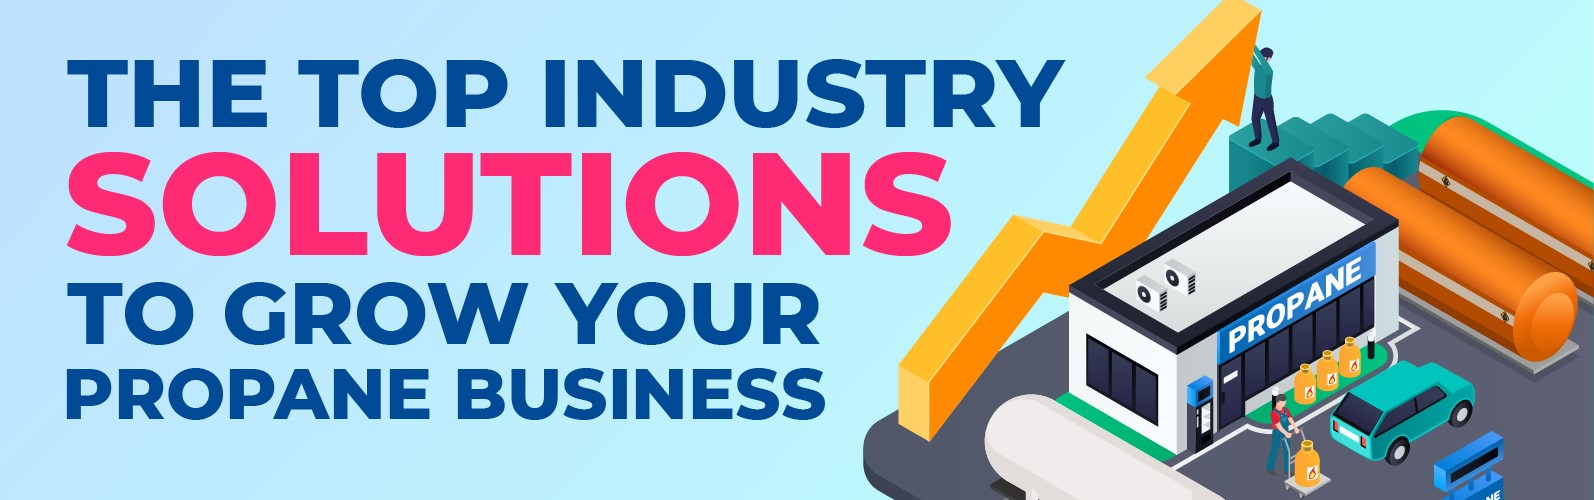 The Top Industry Solutions to Grow Your Propane Business-Banner